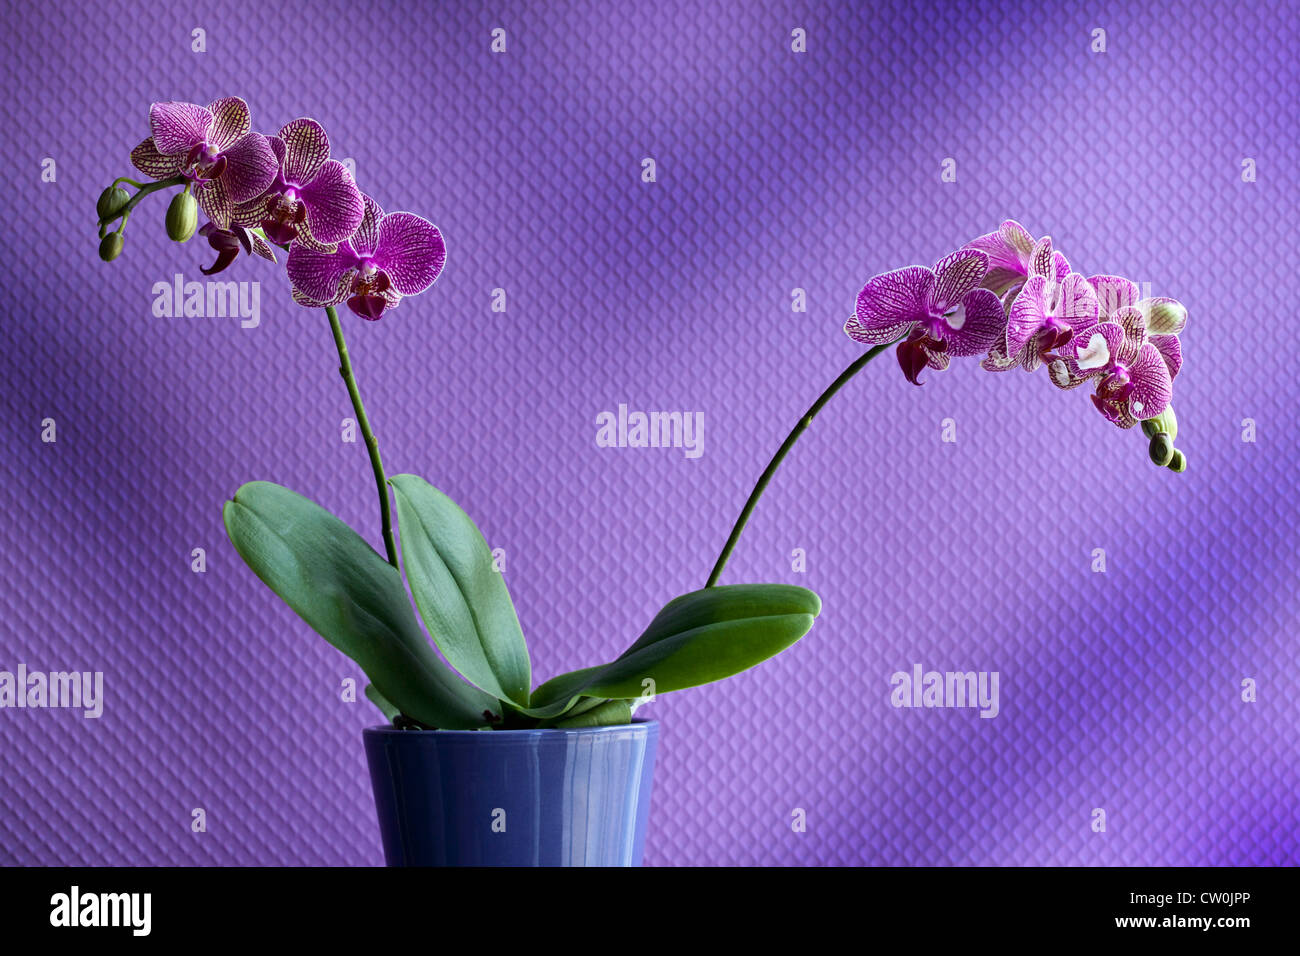 Potted orchid flower indoors - Stock Image